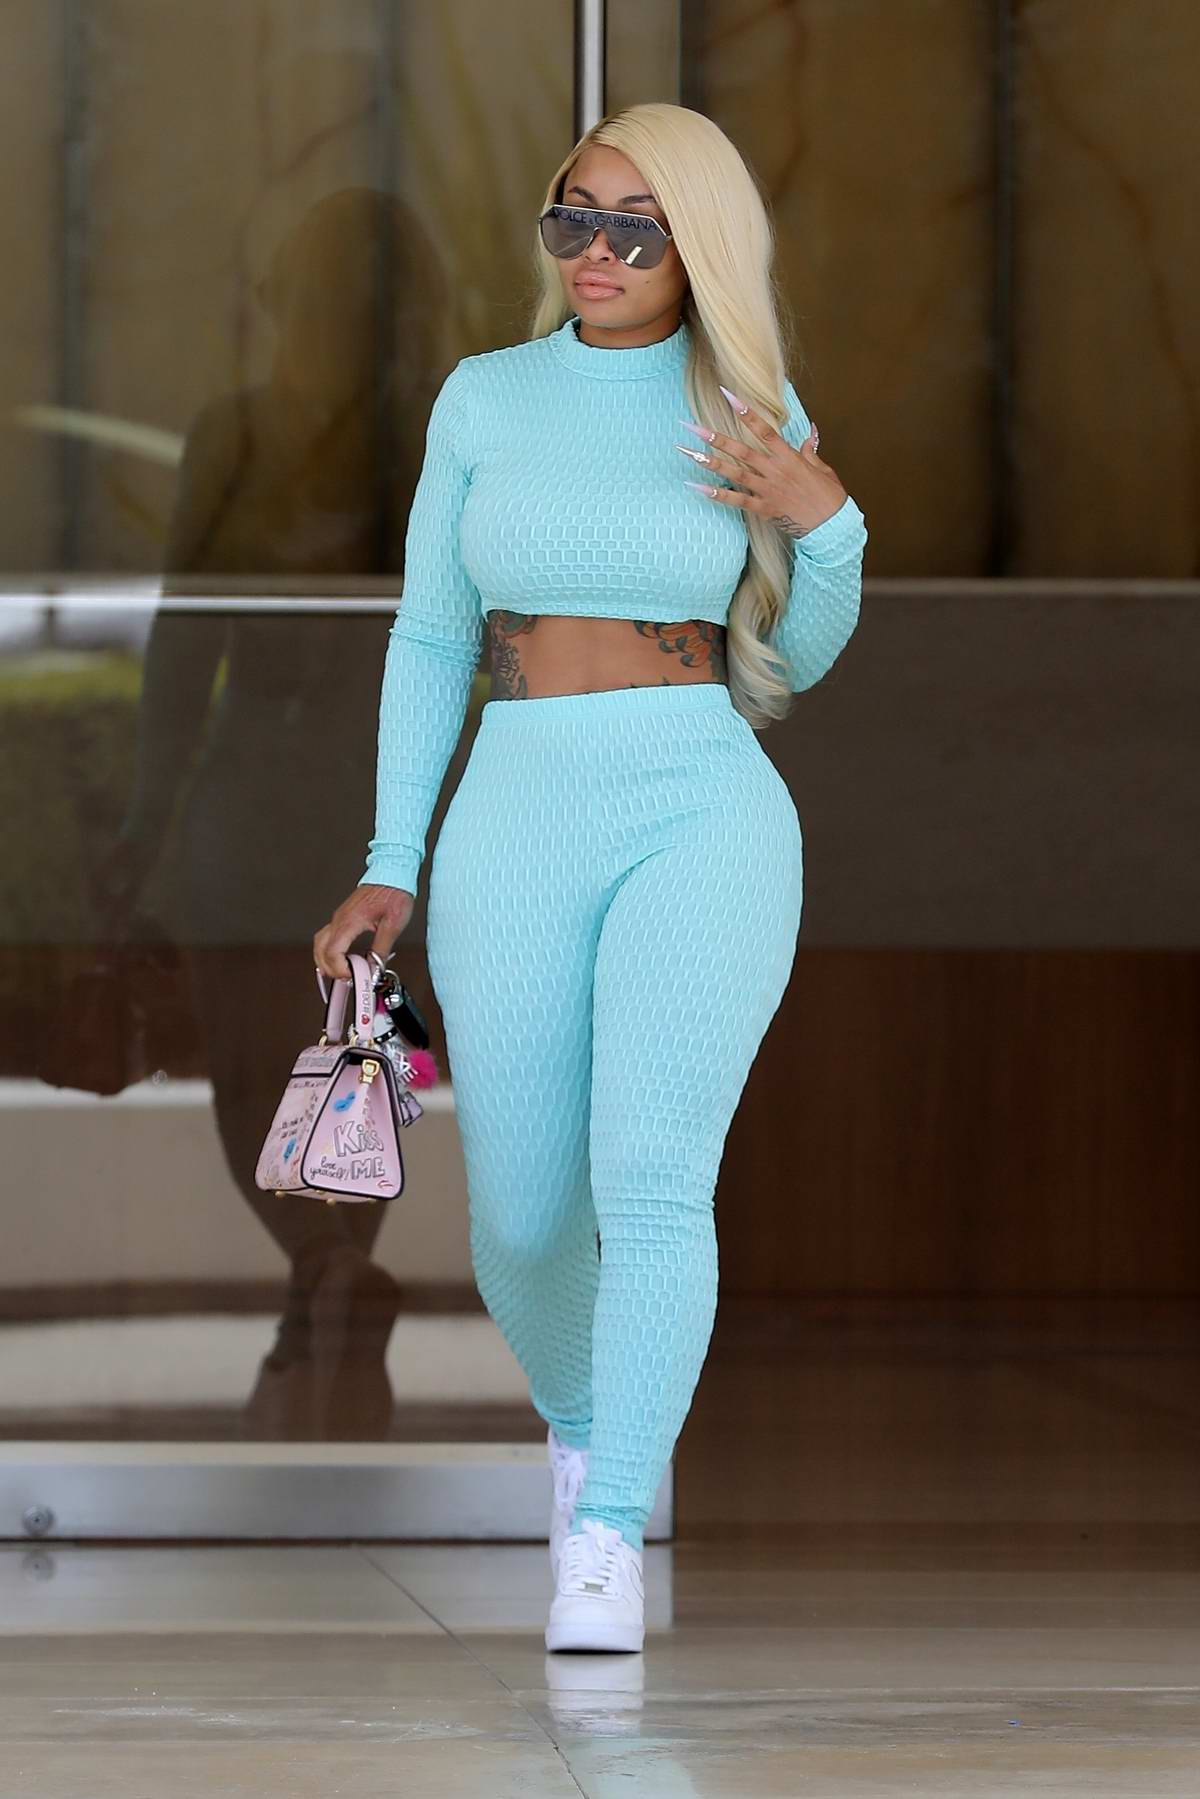 Blac Chyna sports baby blue crop top and matching leggings as she leaves an office building in Beverly Hills, Los Angeles